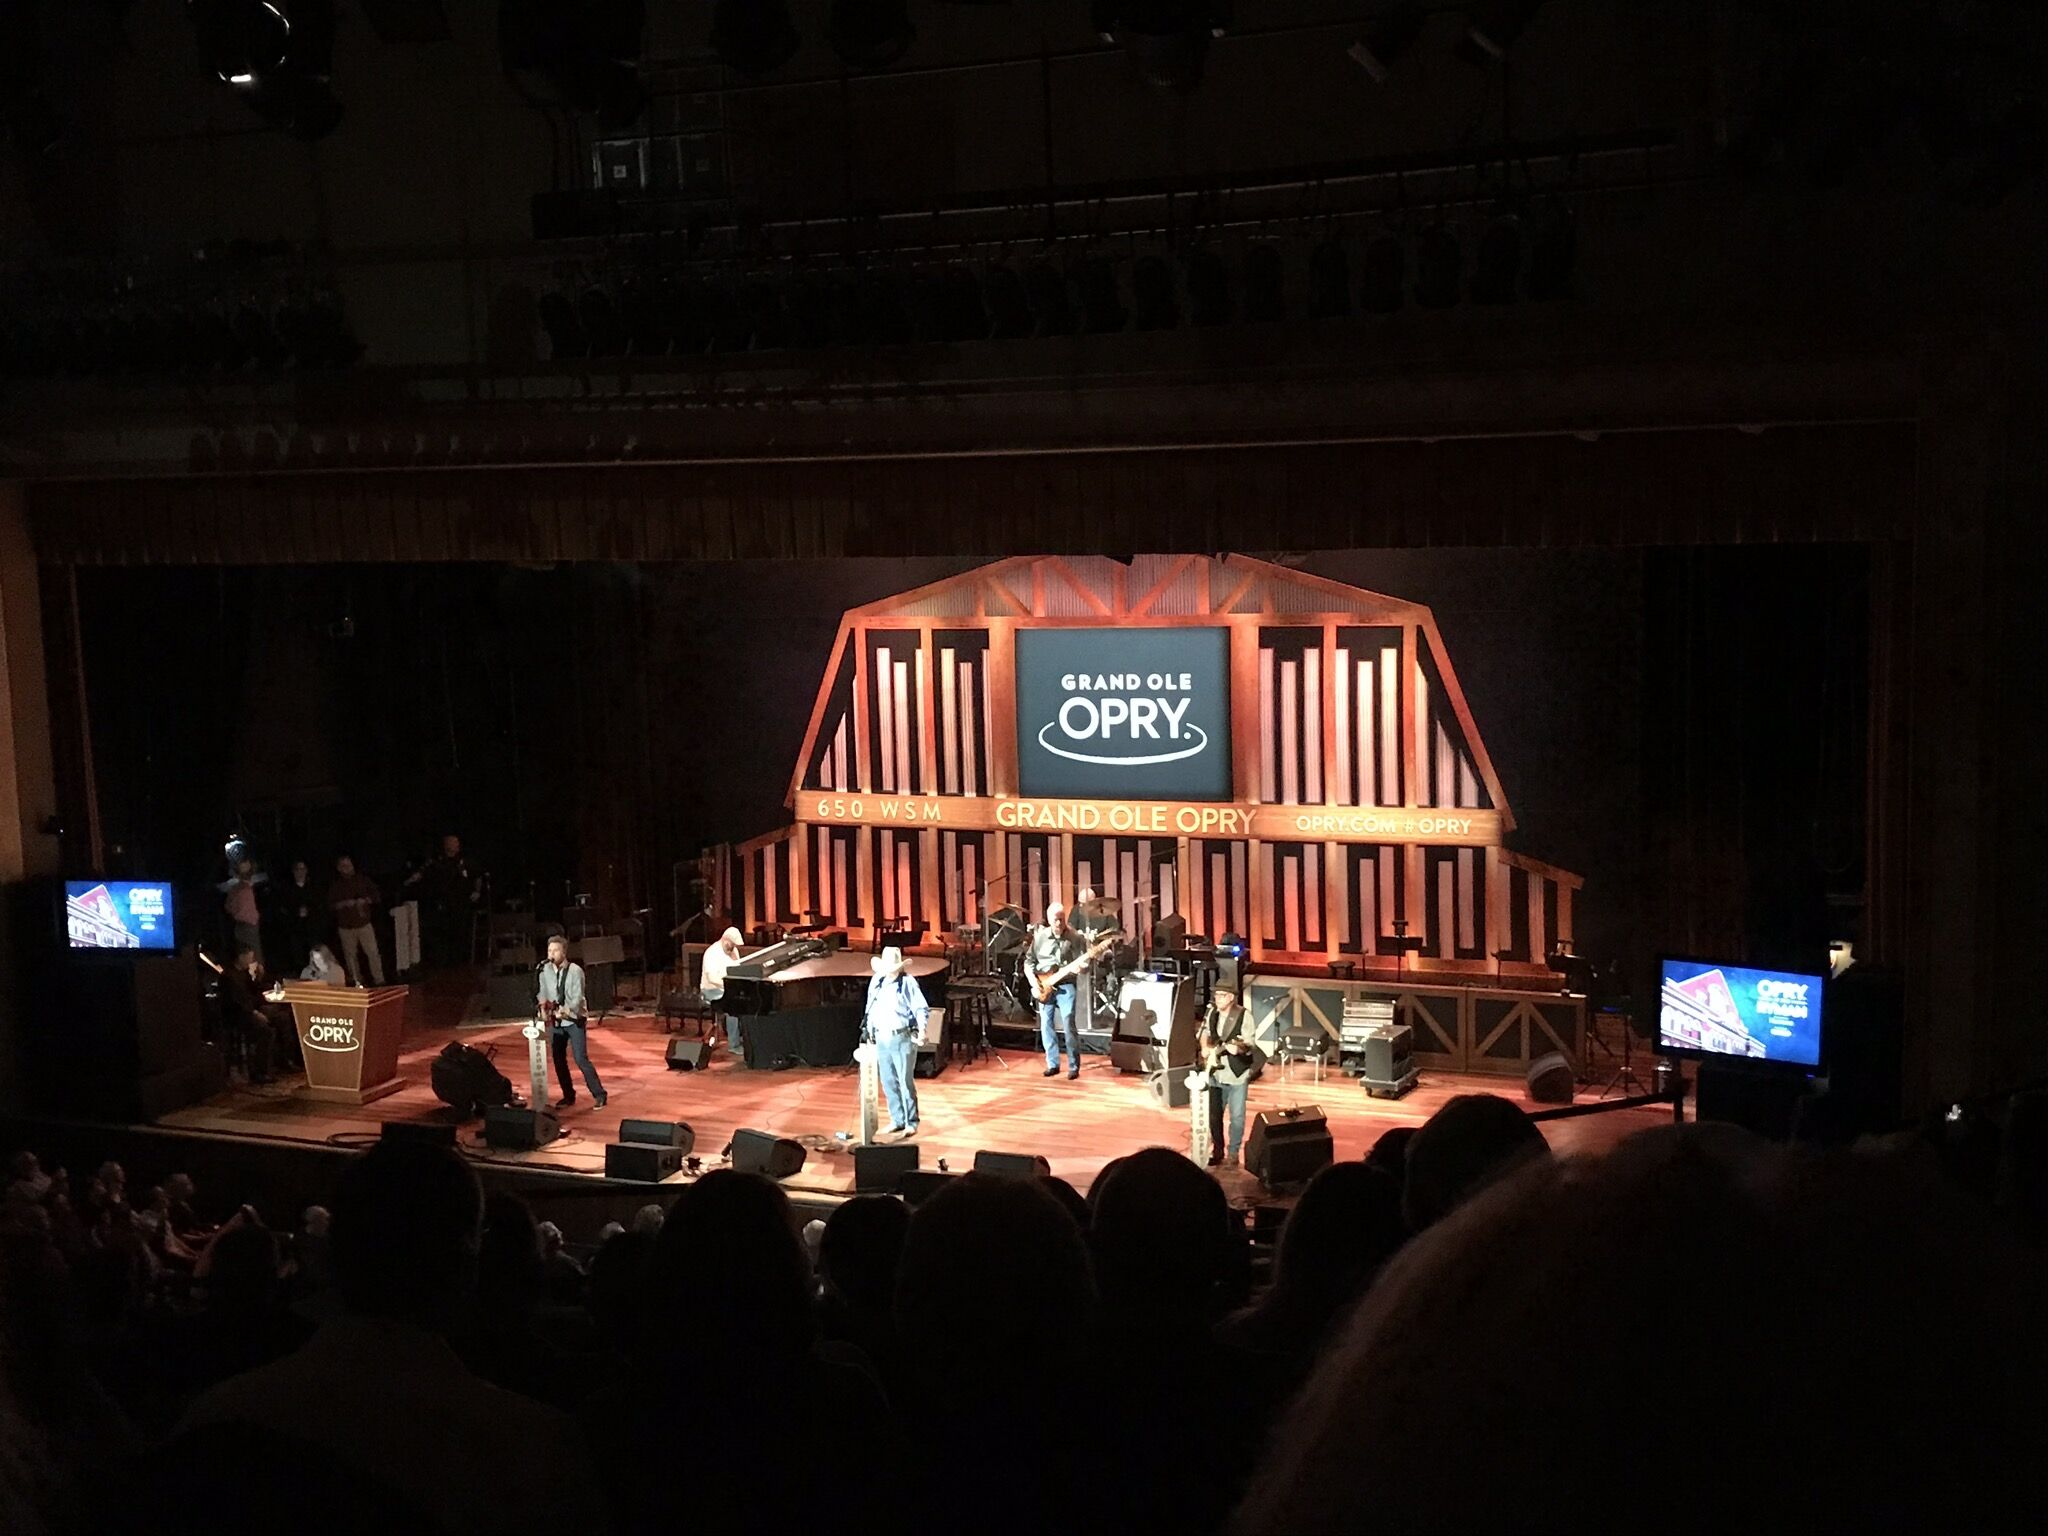 The Grand Ole Opry in Nashville, Tennessee USA.